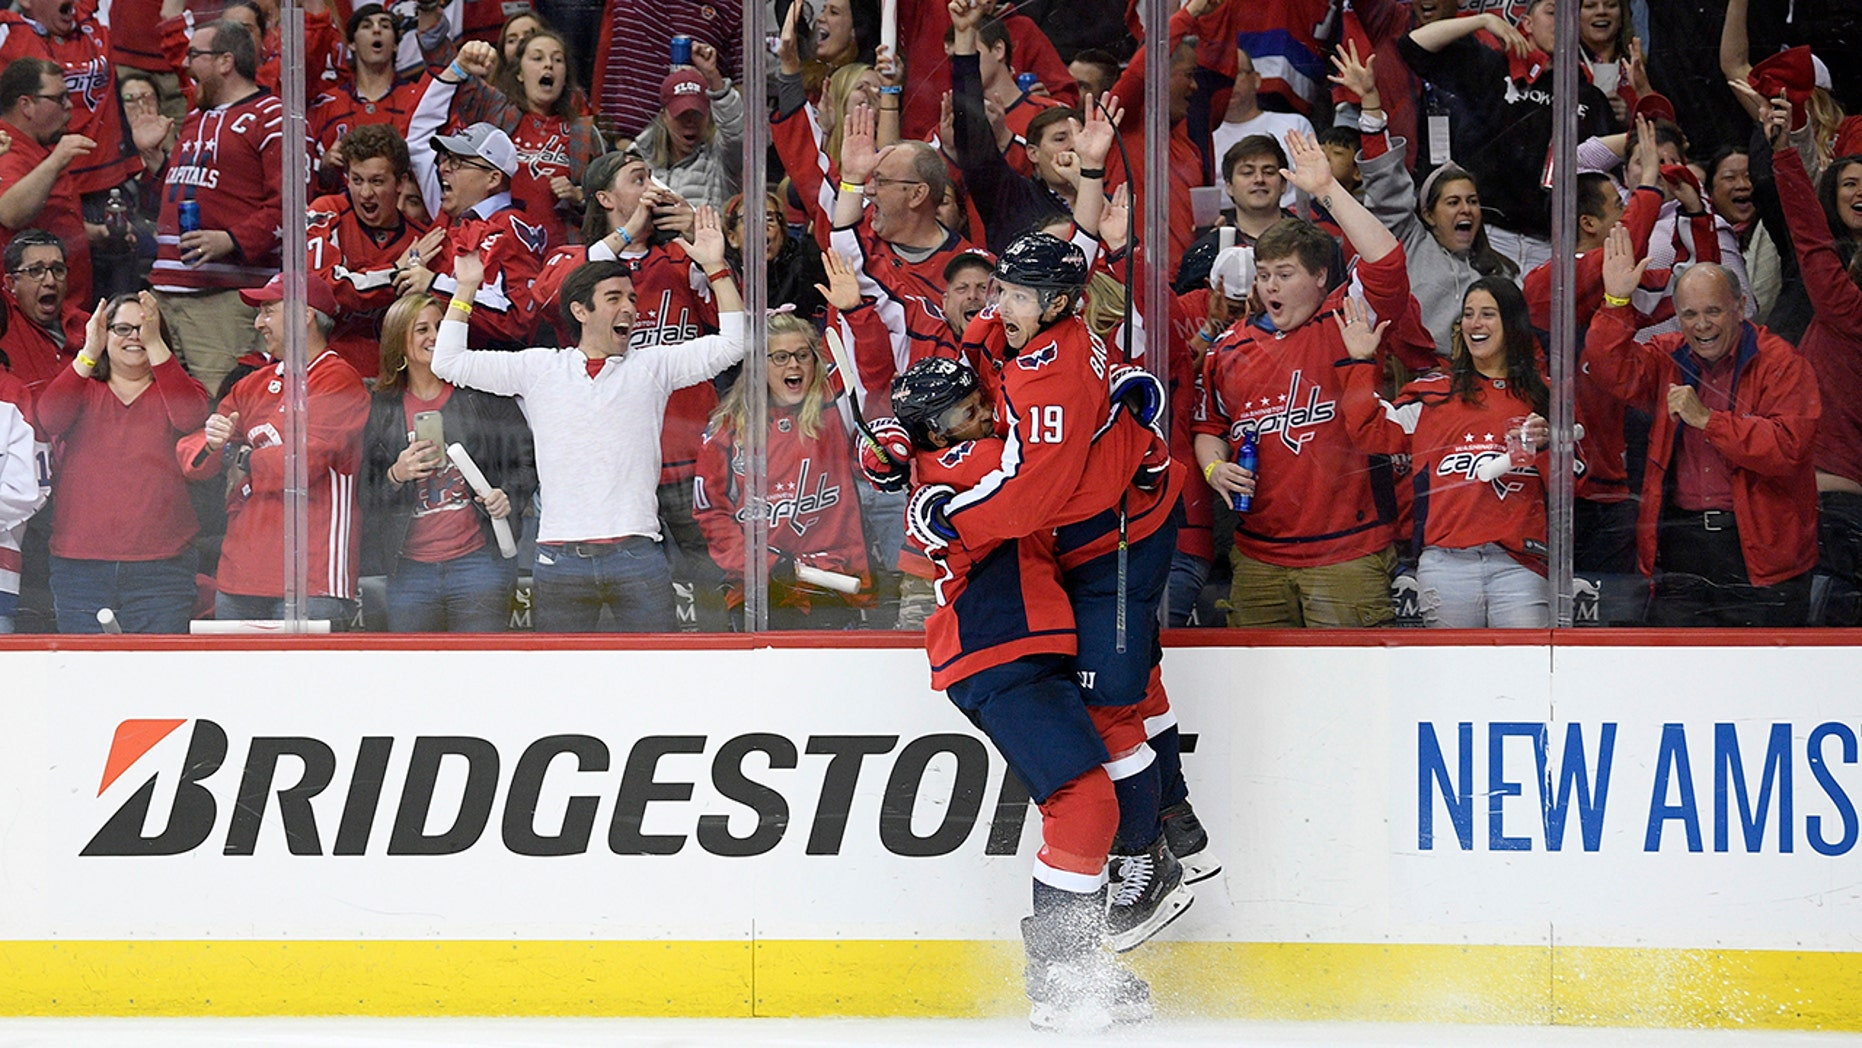 Washington Capitals center Nicklas Backstrom (19), of Sweden, celebrates his goal with right wing Devante Smith-Pelly, left, during the second period of Game 5 of an NHL hockey first-round playoff series against the Carolina Hurricanes, Saturday, April 20, 2019, in Washington. (AP Photo/Nick Wass)